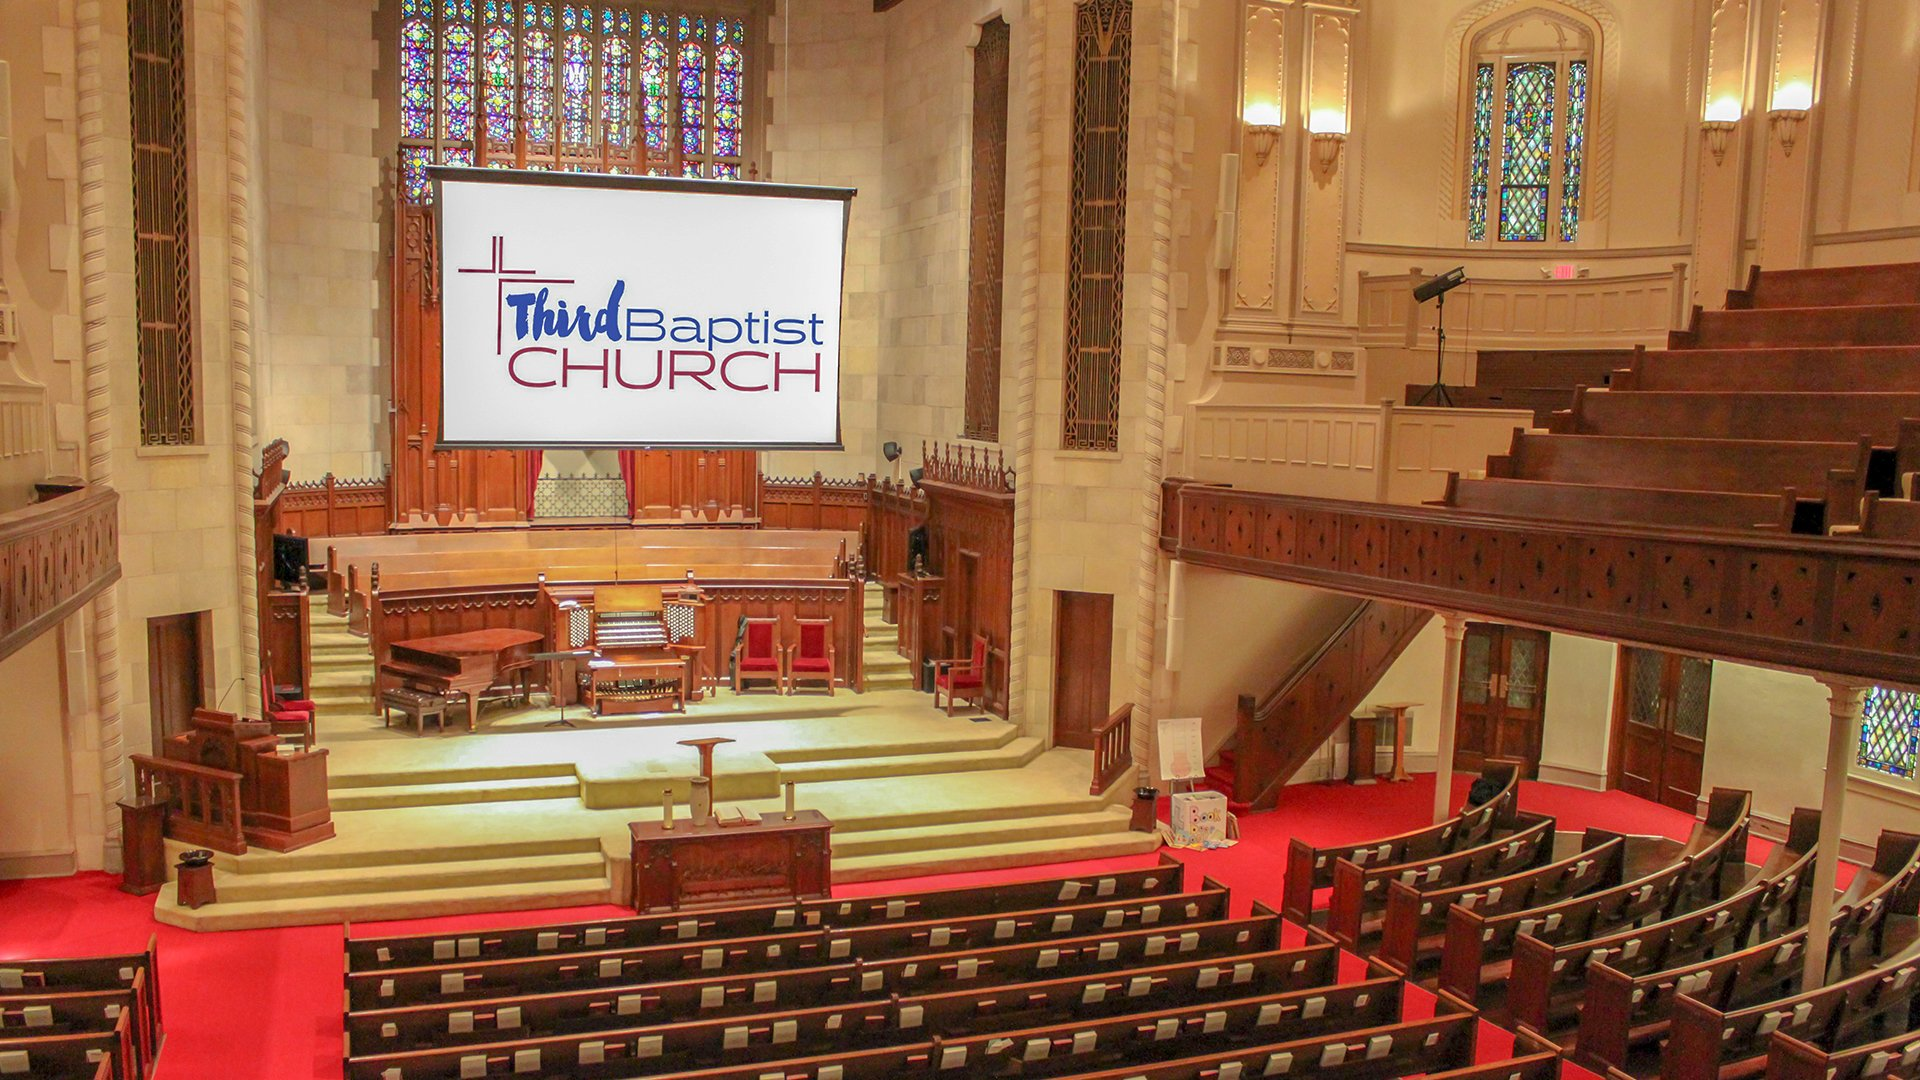 audiovisual-house-of-worship_third-baptist-church